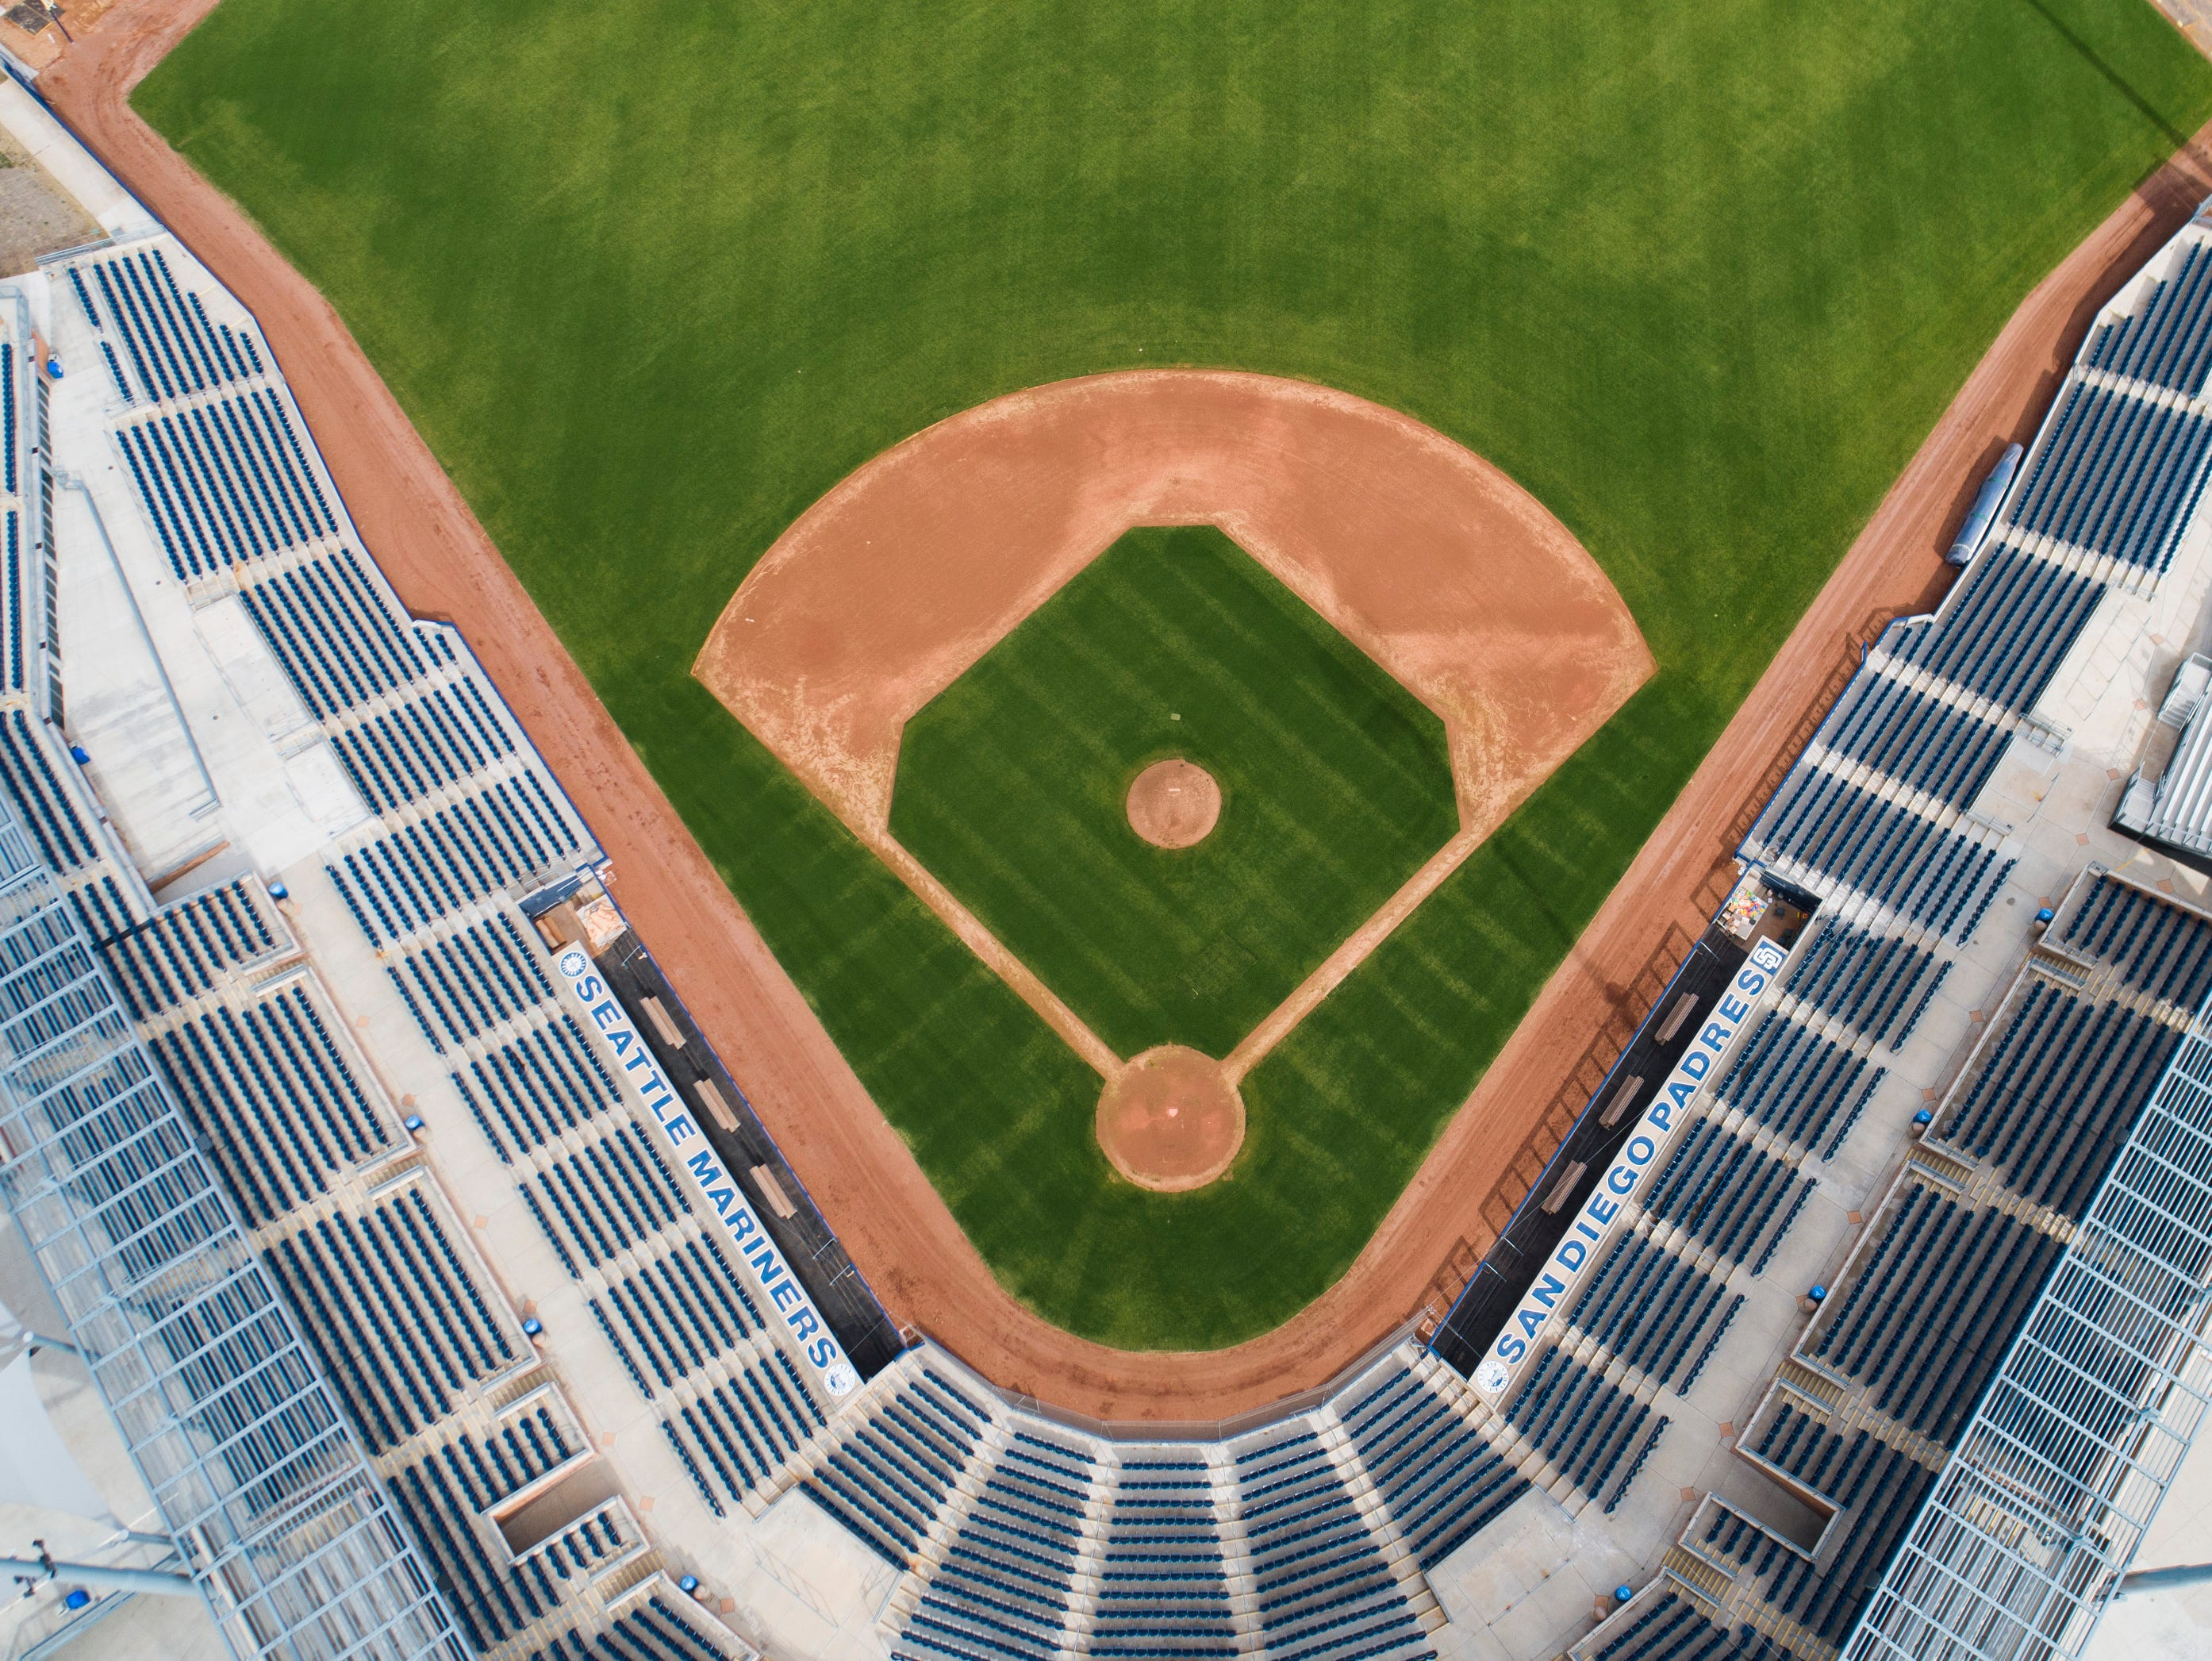 Aerial drone view of Peoria Sports Complex, Cactus League home of the Seattle Mariners and San Diego Padres, in Peoria, Arizona January 9, 2019.